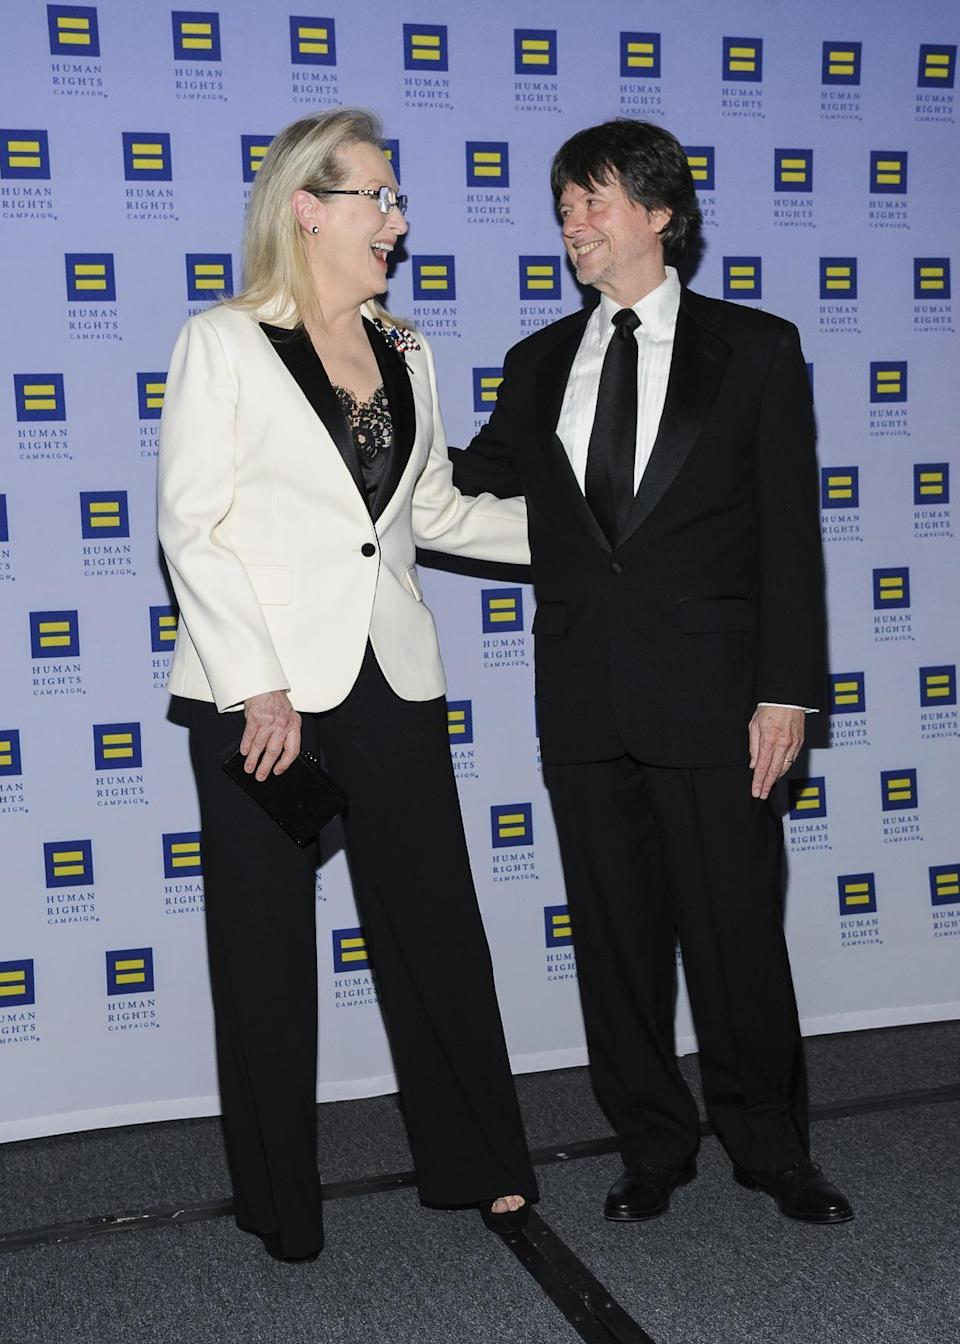 Meryl Streep, left, and Ken Burns attend the Human Rights Campaign Greater New York Gala at Waldorf Astoria Hotel on Saturday, Feb. 11, 2017, in New York. (Photo by Christopher Smith/Invision/AP)